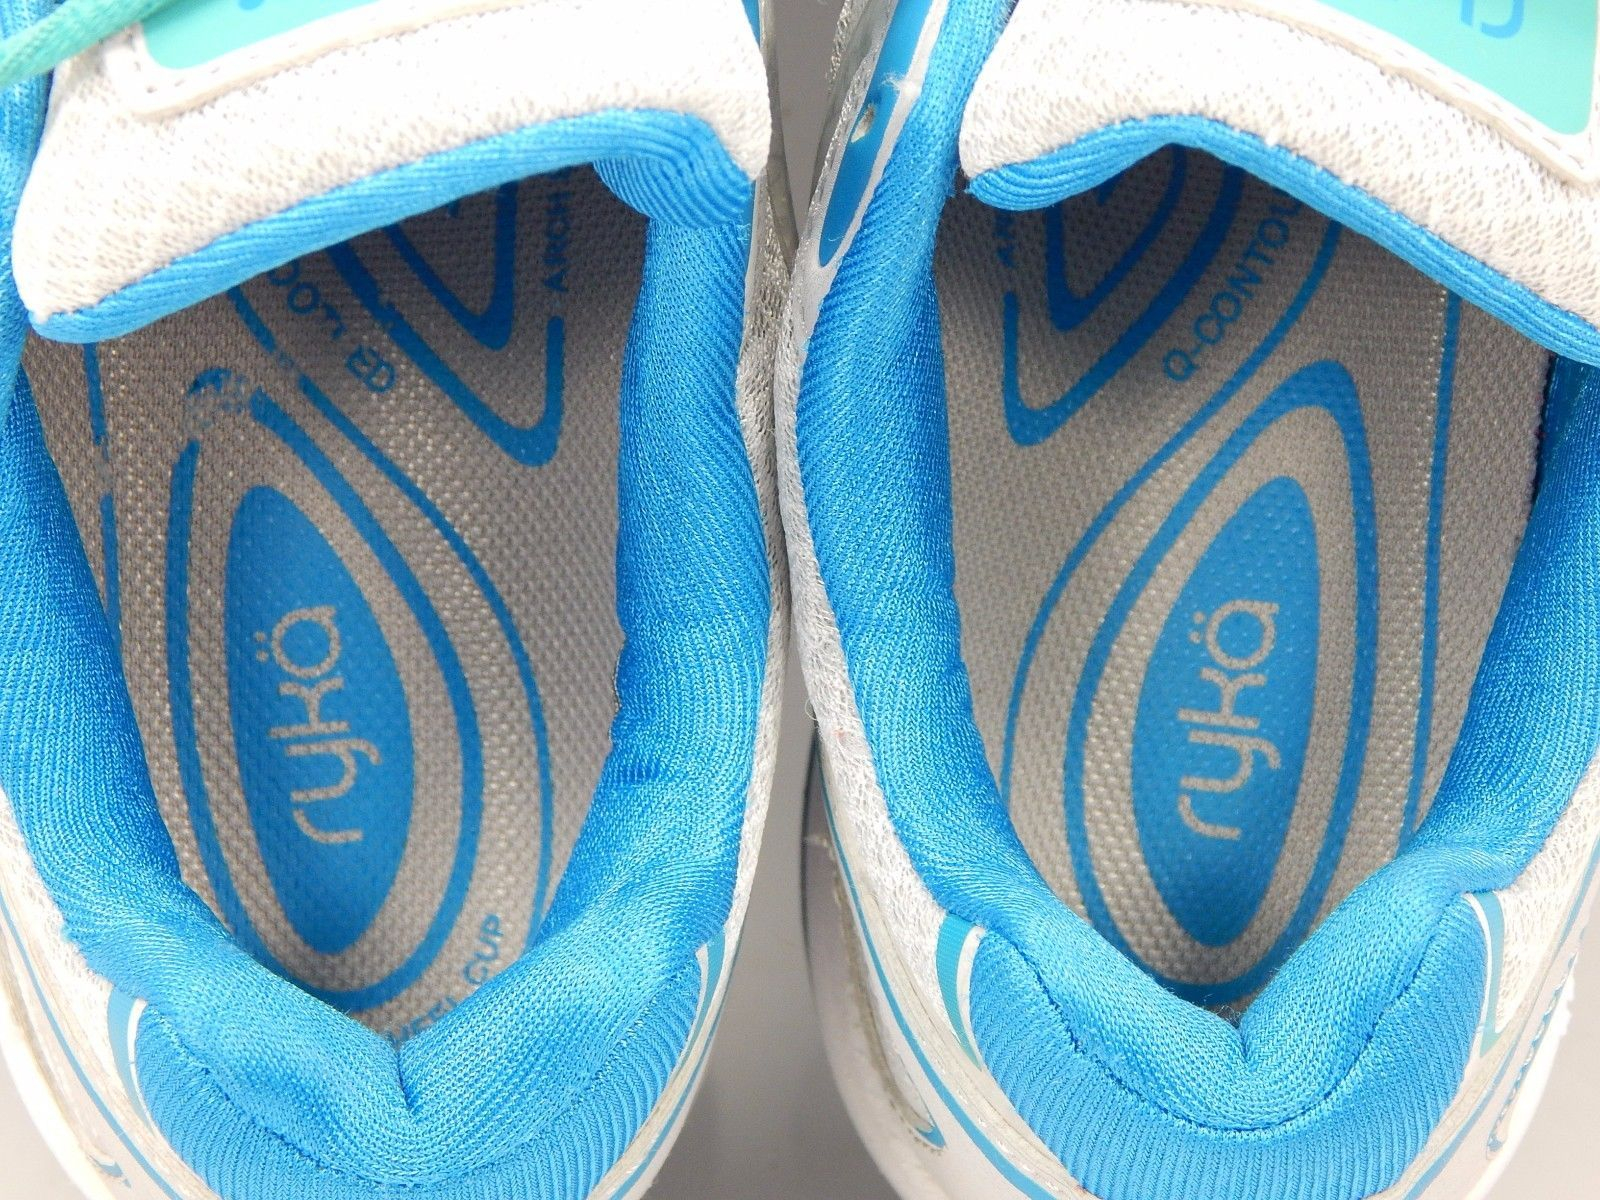 Ryka Devo Plus Women's Running Shoes Size US 8.5 M (B) EU 39.5 Silver Blue